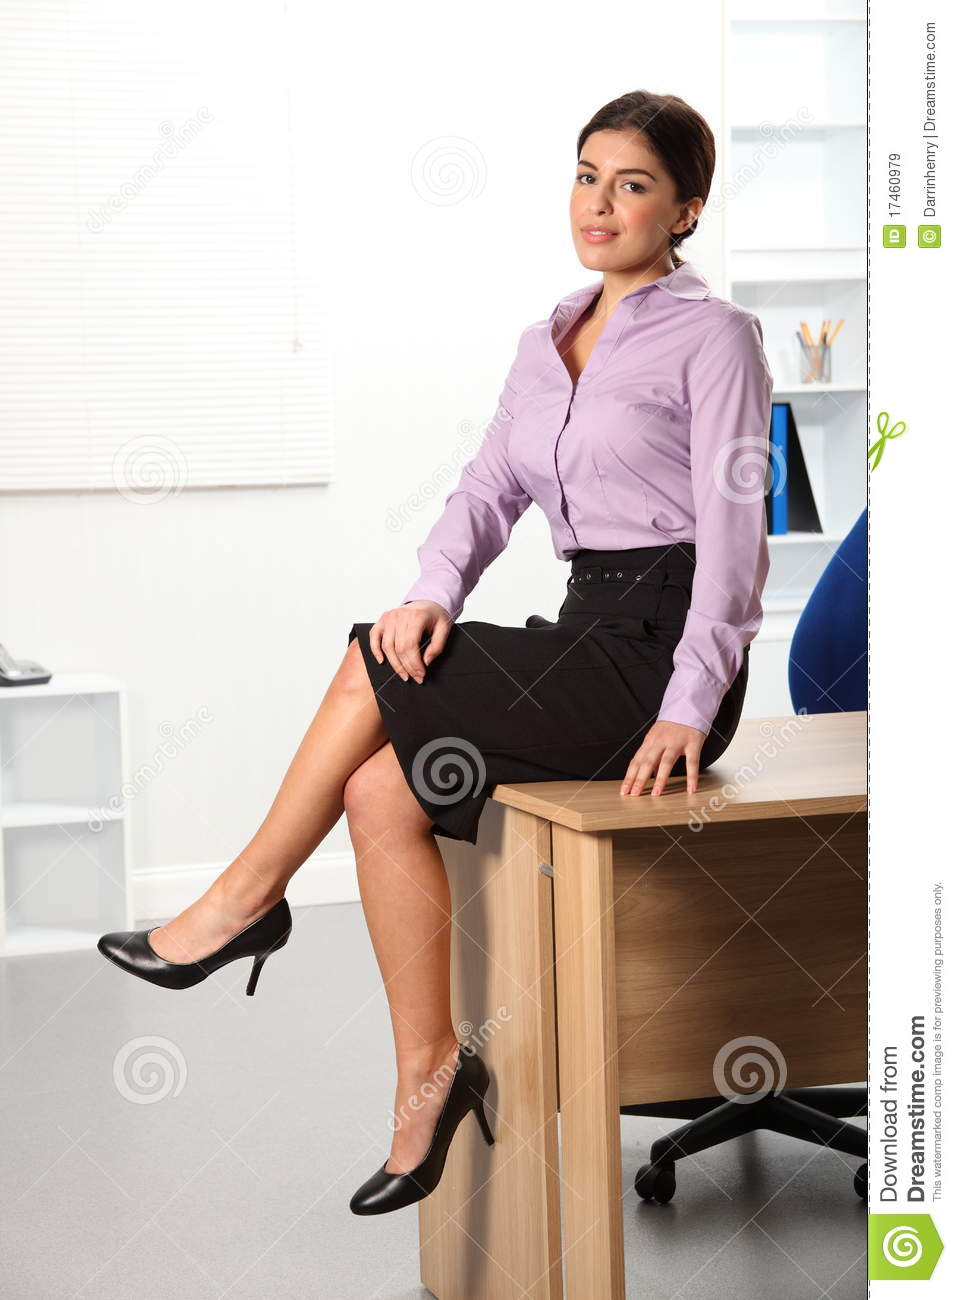 Relaxed beautiful young business woman sitting on royalty free stock images image 17460979 - Desk girl image in ...